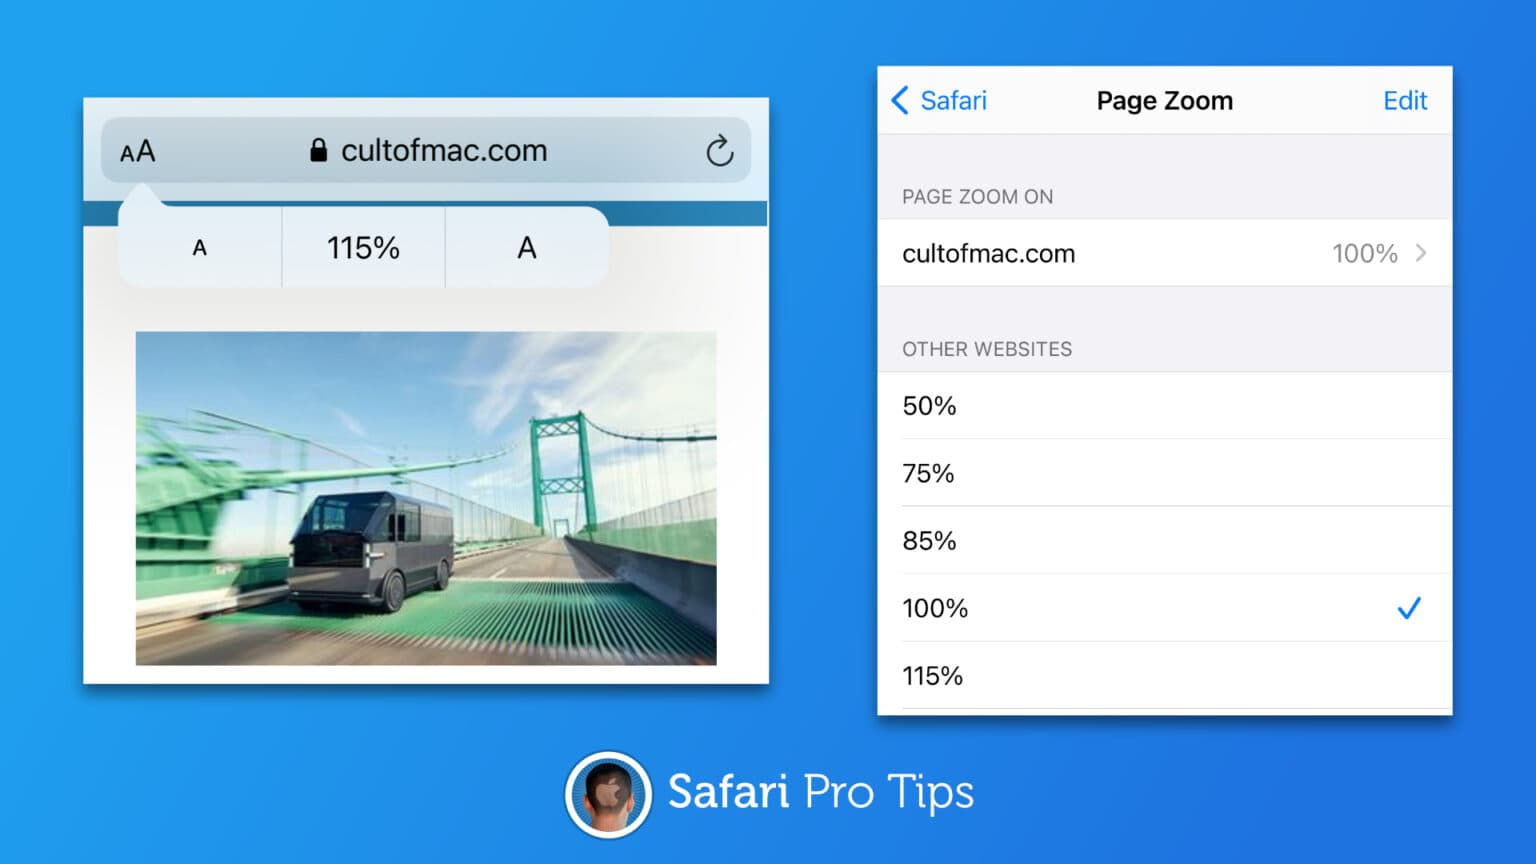 How to enable Page Zoom in Safari